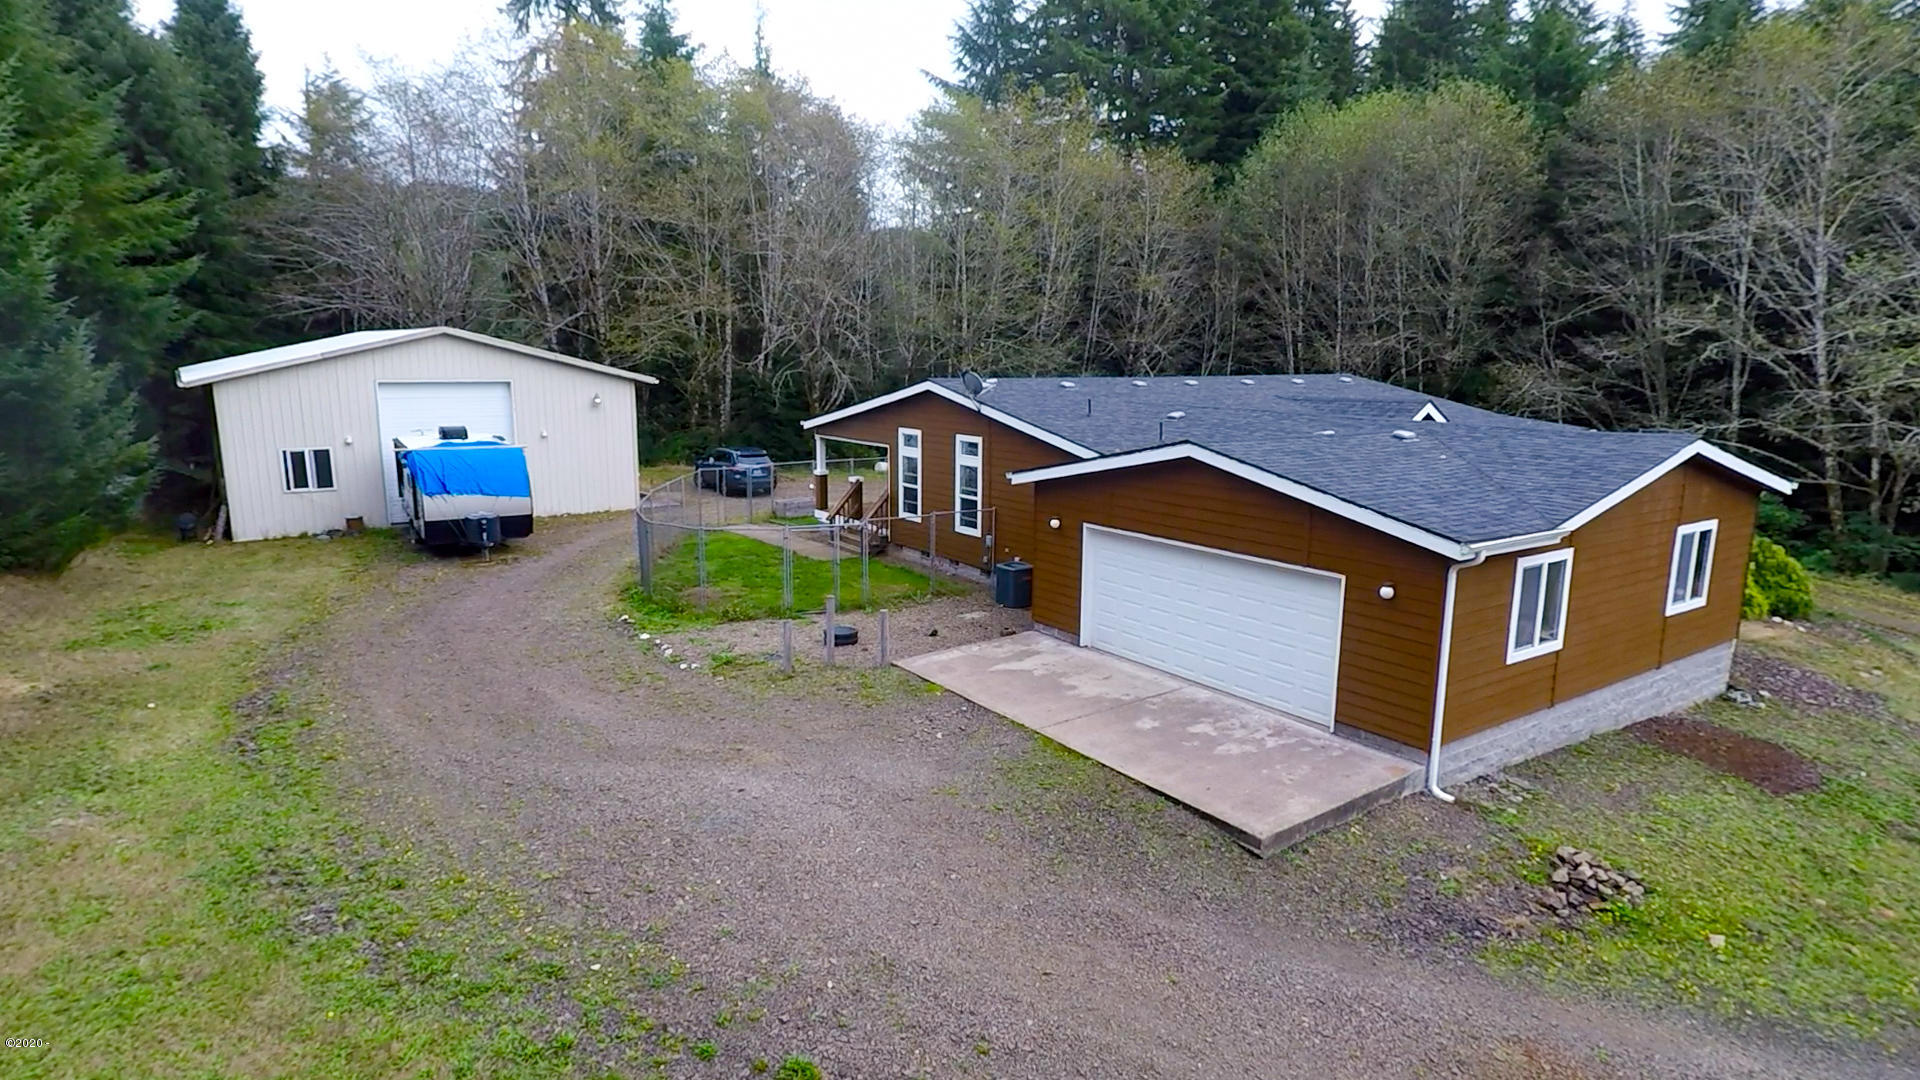 12273 Siletz Hwy, Lincoln City, OR 97367